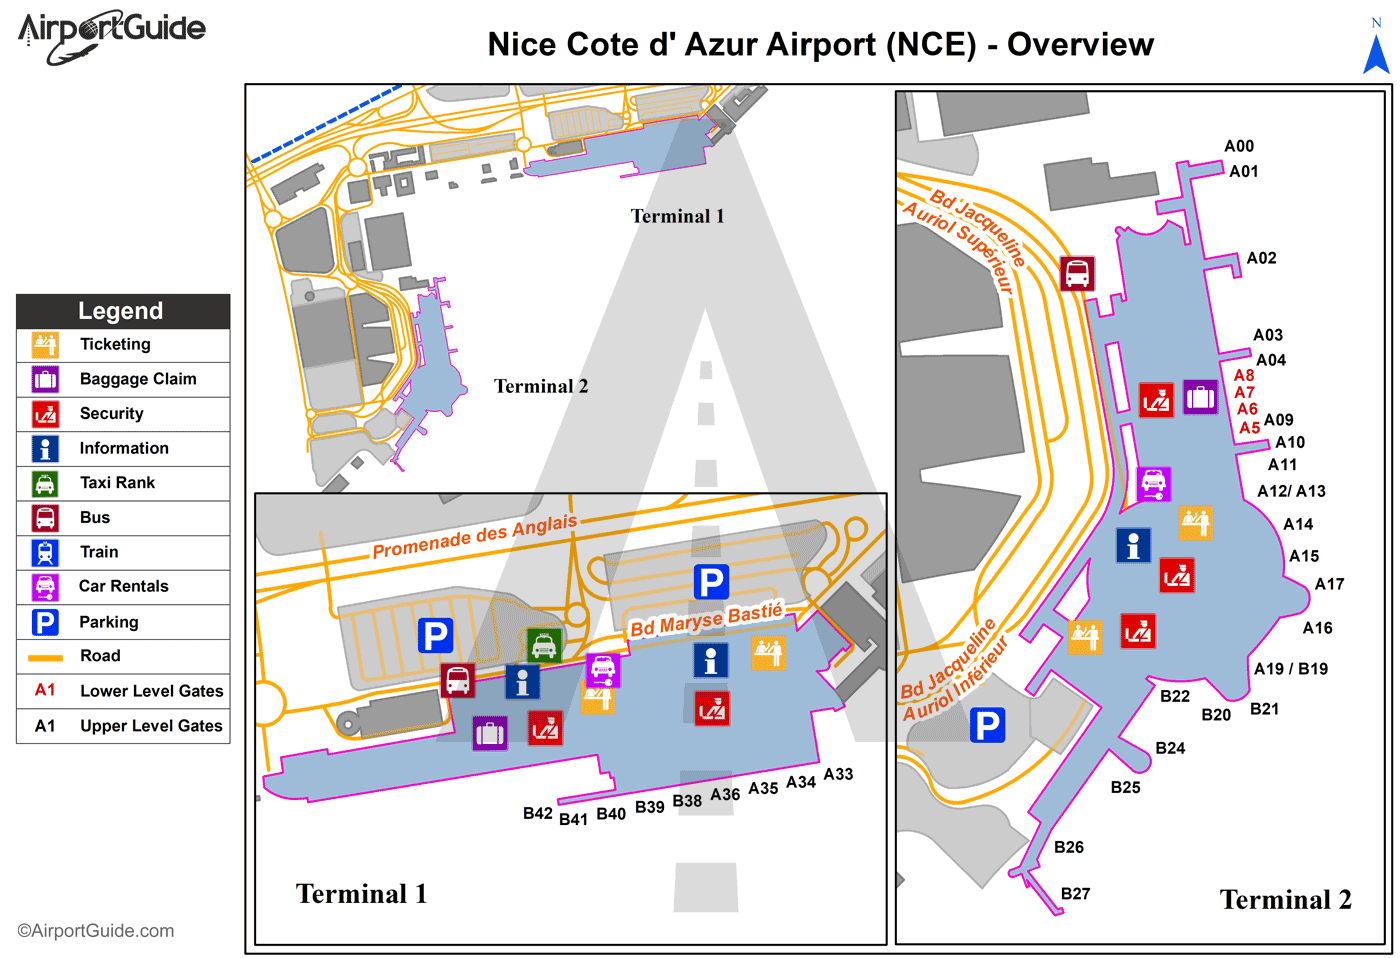 Nice - Nice-Côte d'Azur (NCE) Airport Terminal Map - Overview